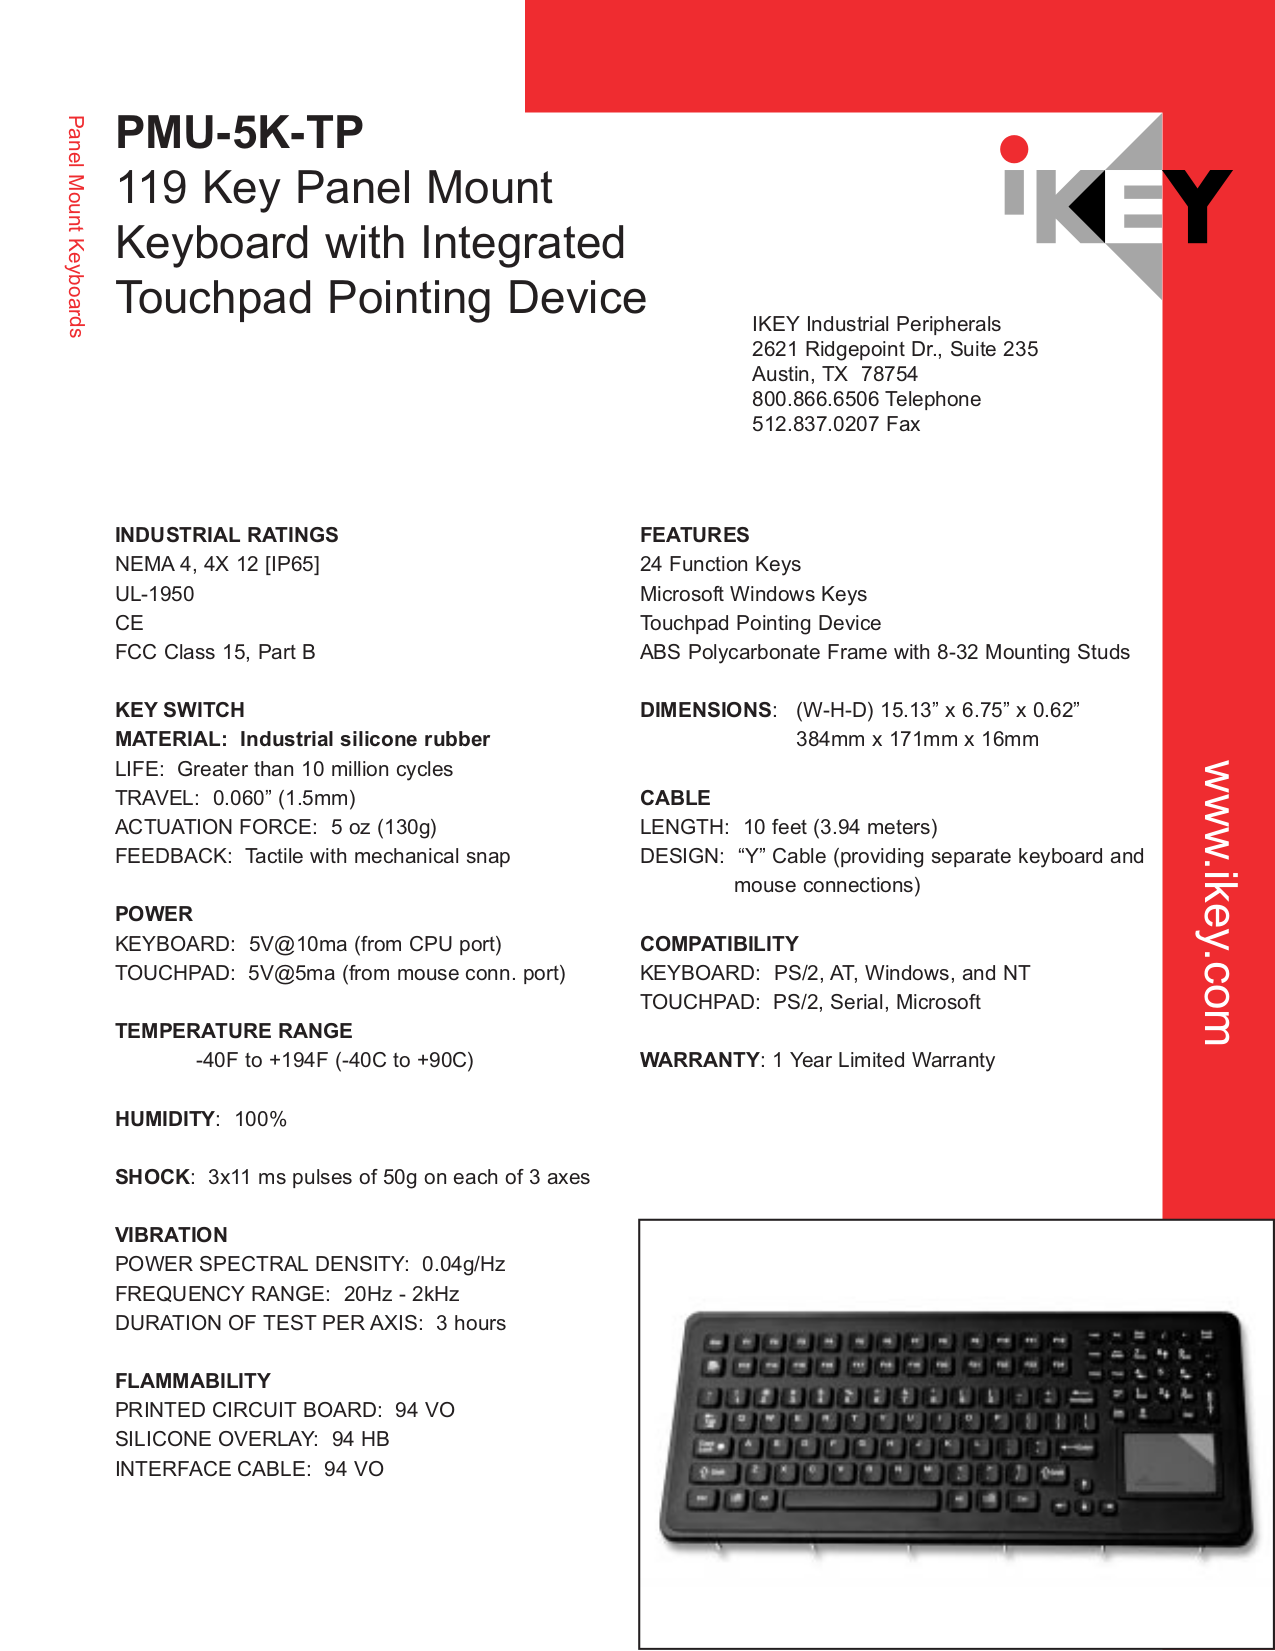 pdf for iKey Keyboard PMU-5K manual